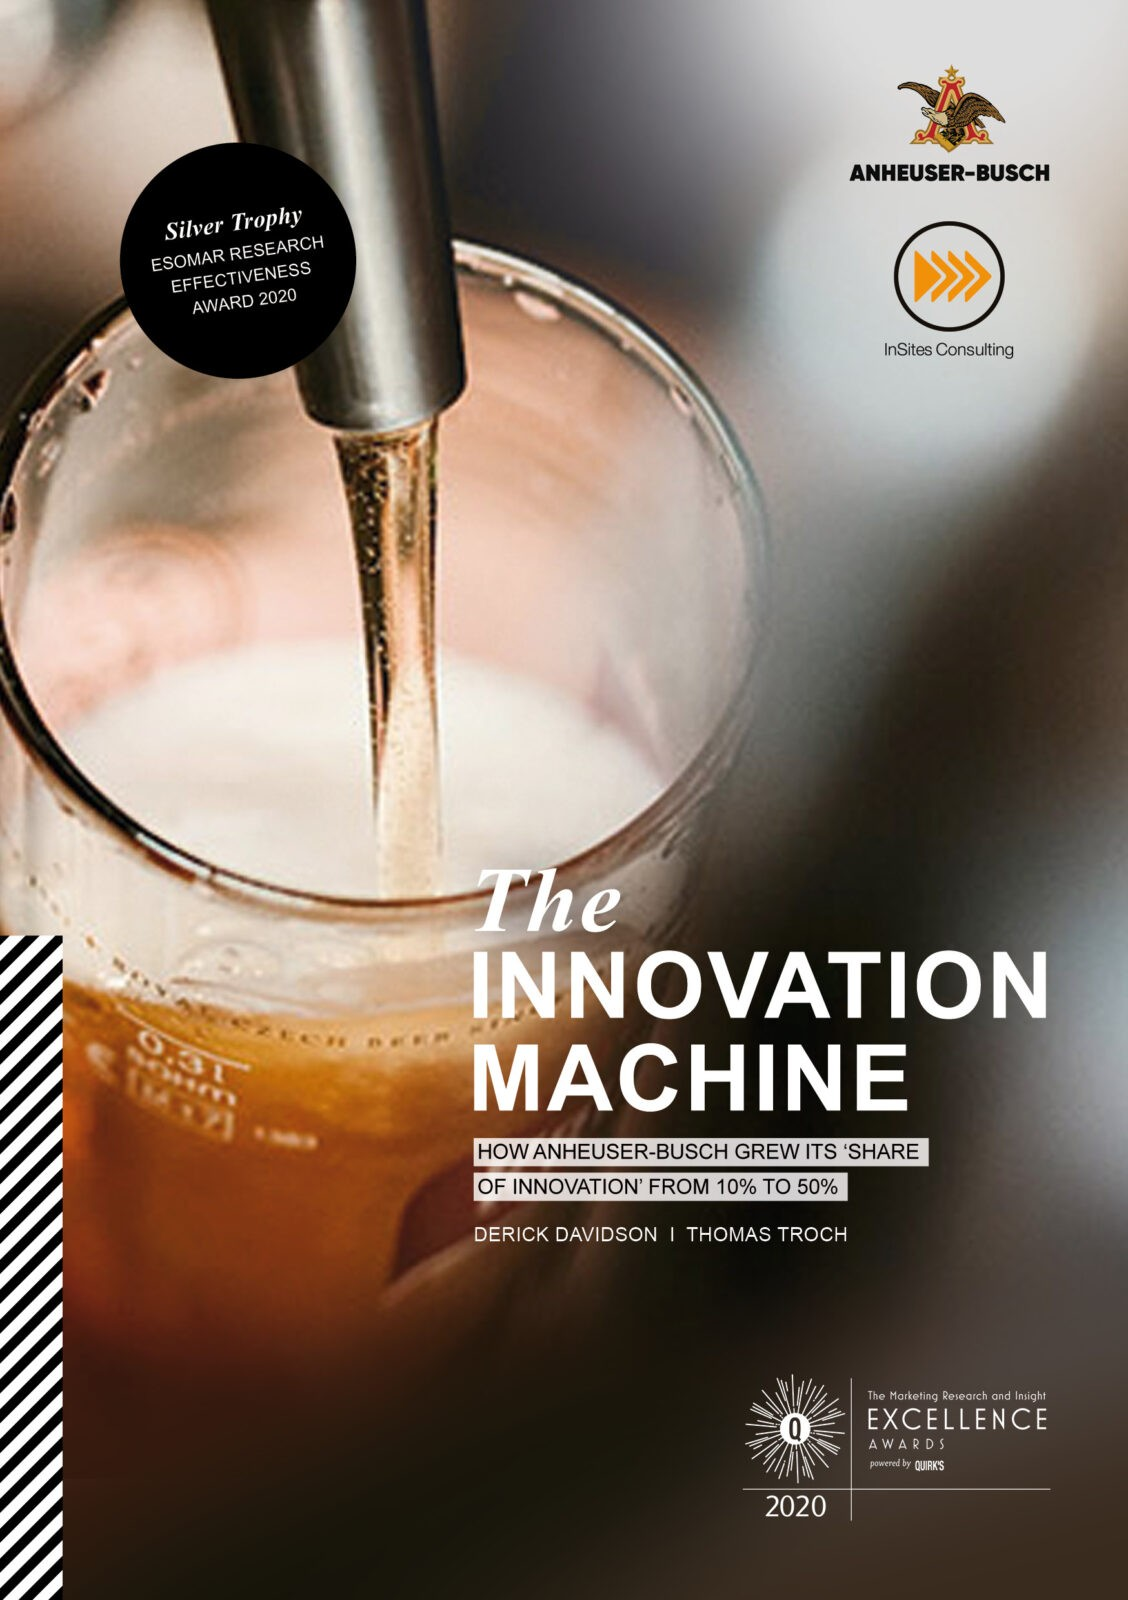 The Innovation Machine - an Anheuser-Busch case study